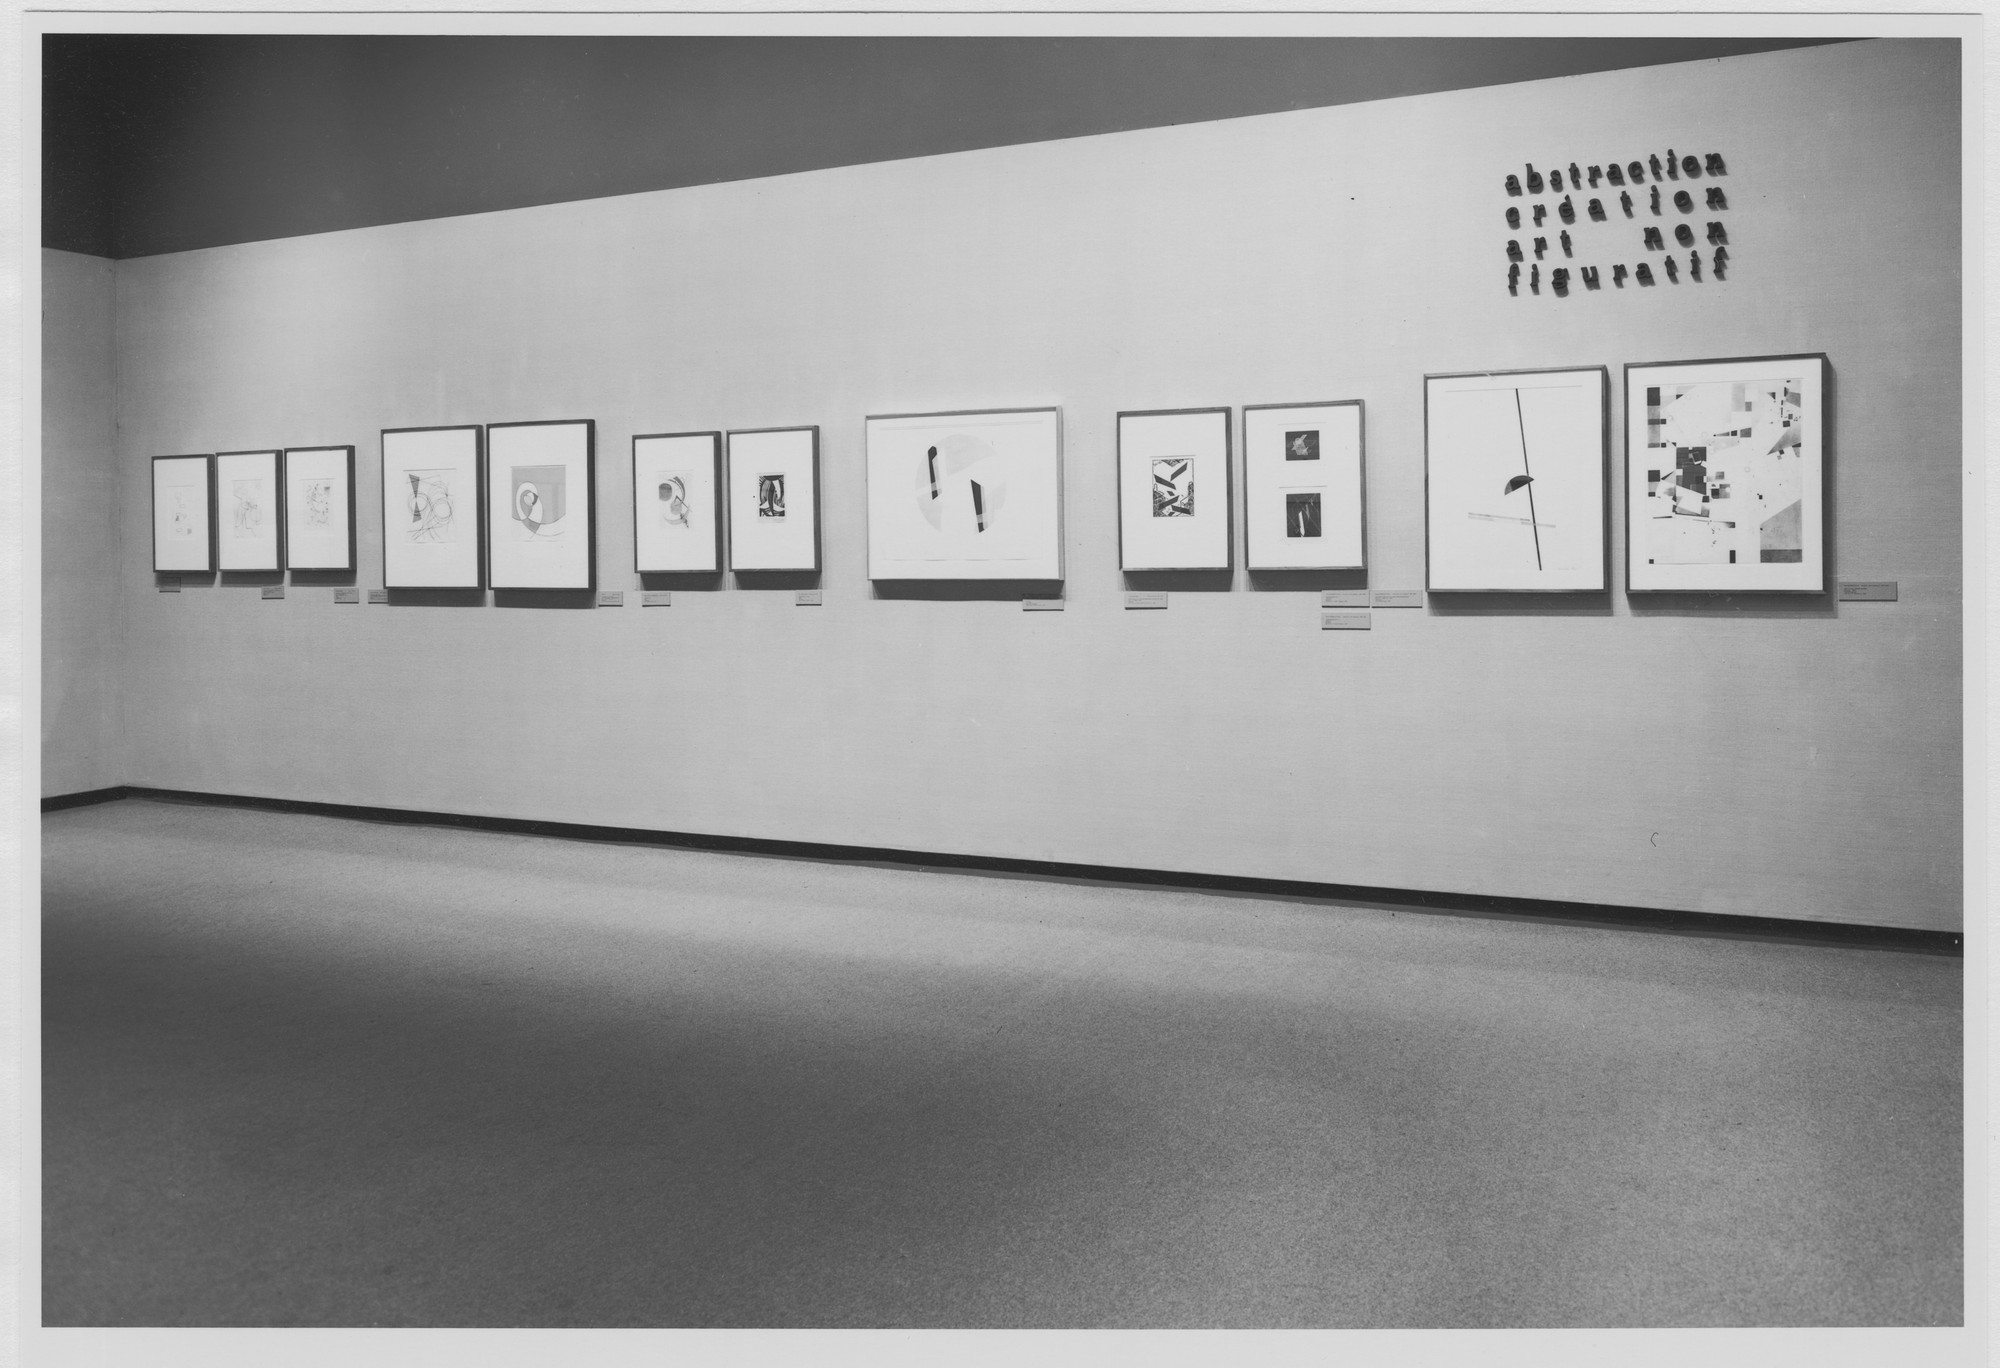 "Installation view of the exhibition, ""Abstraction/Creation."" September 20, 1977–December 4, 1977. Photographic Archive. The Museum of Modern Art Archives, New York. IN1185.1. Photograph by Katherine Keller."